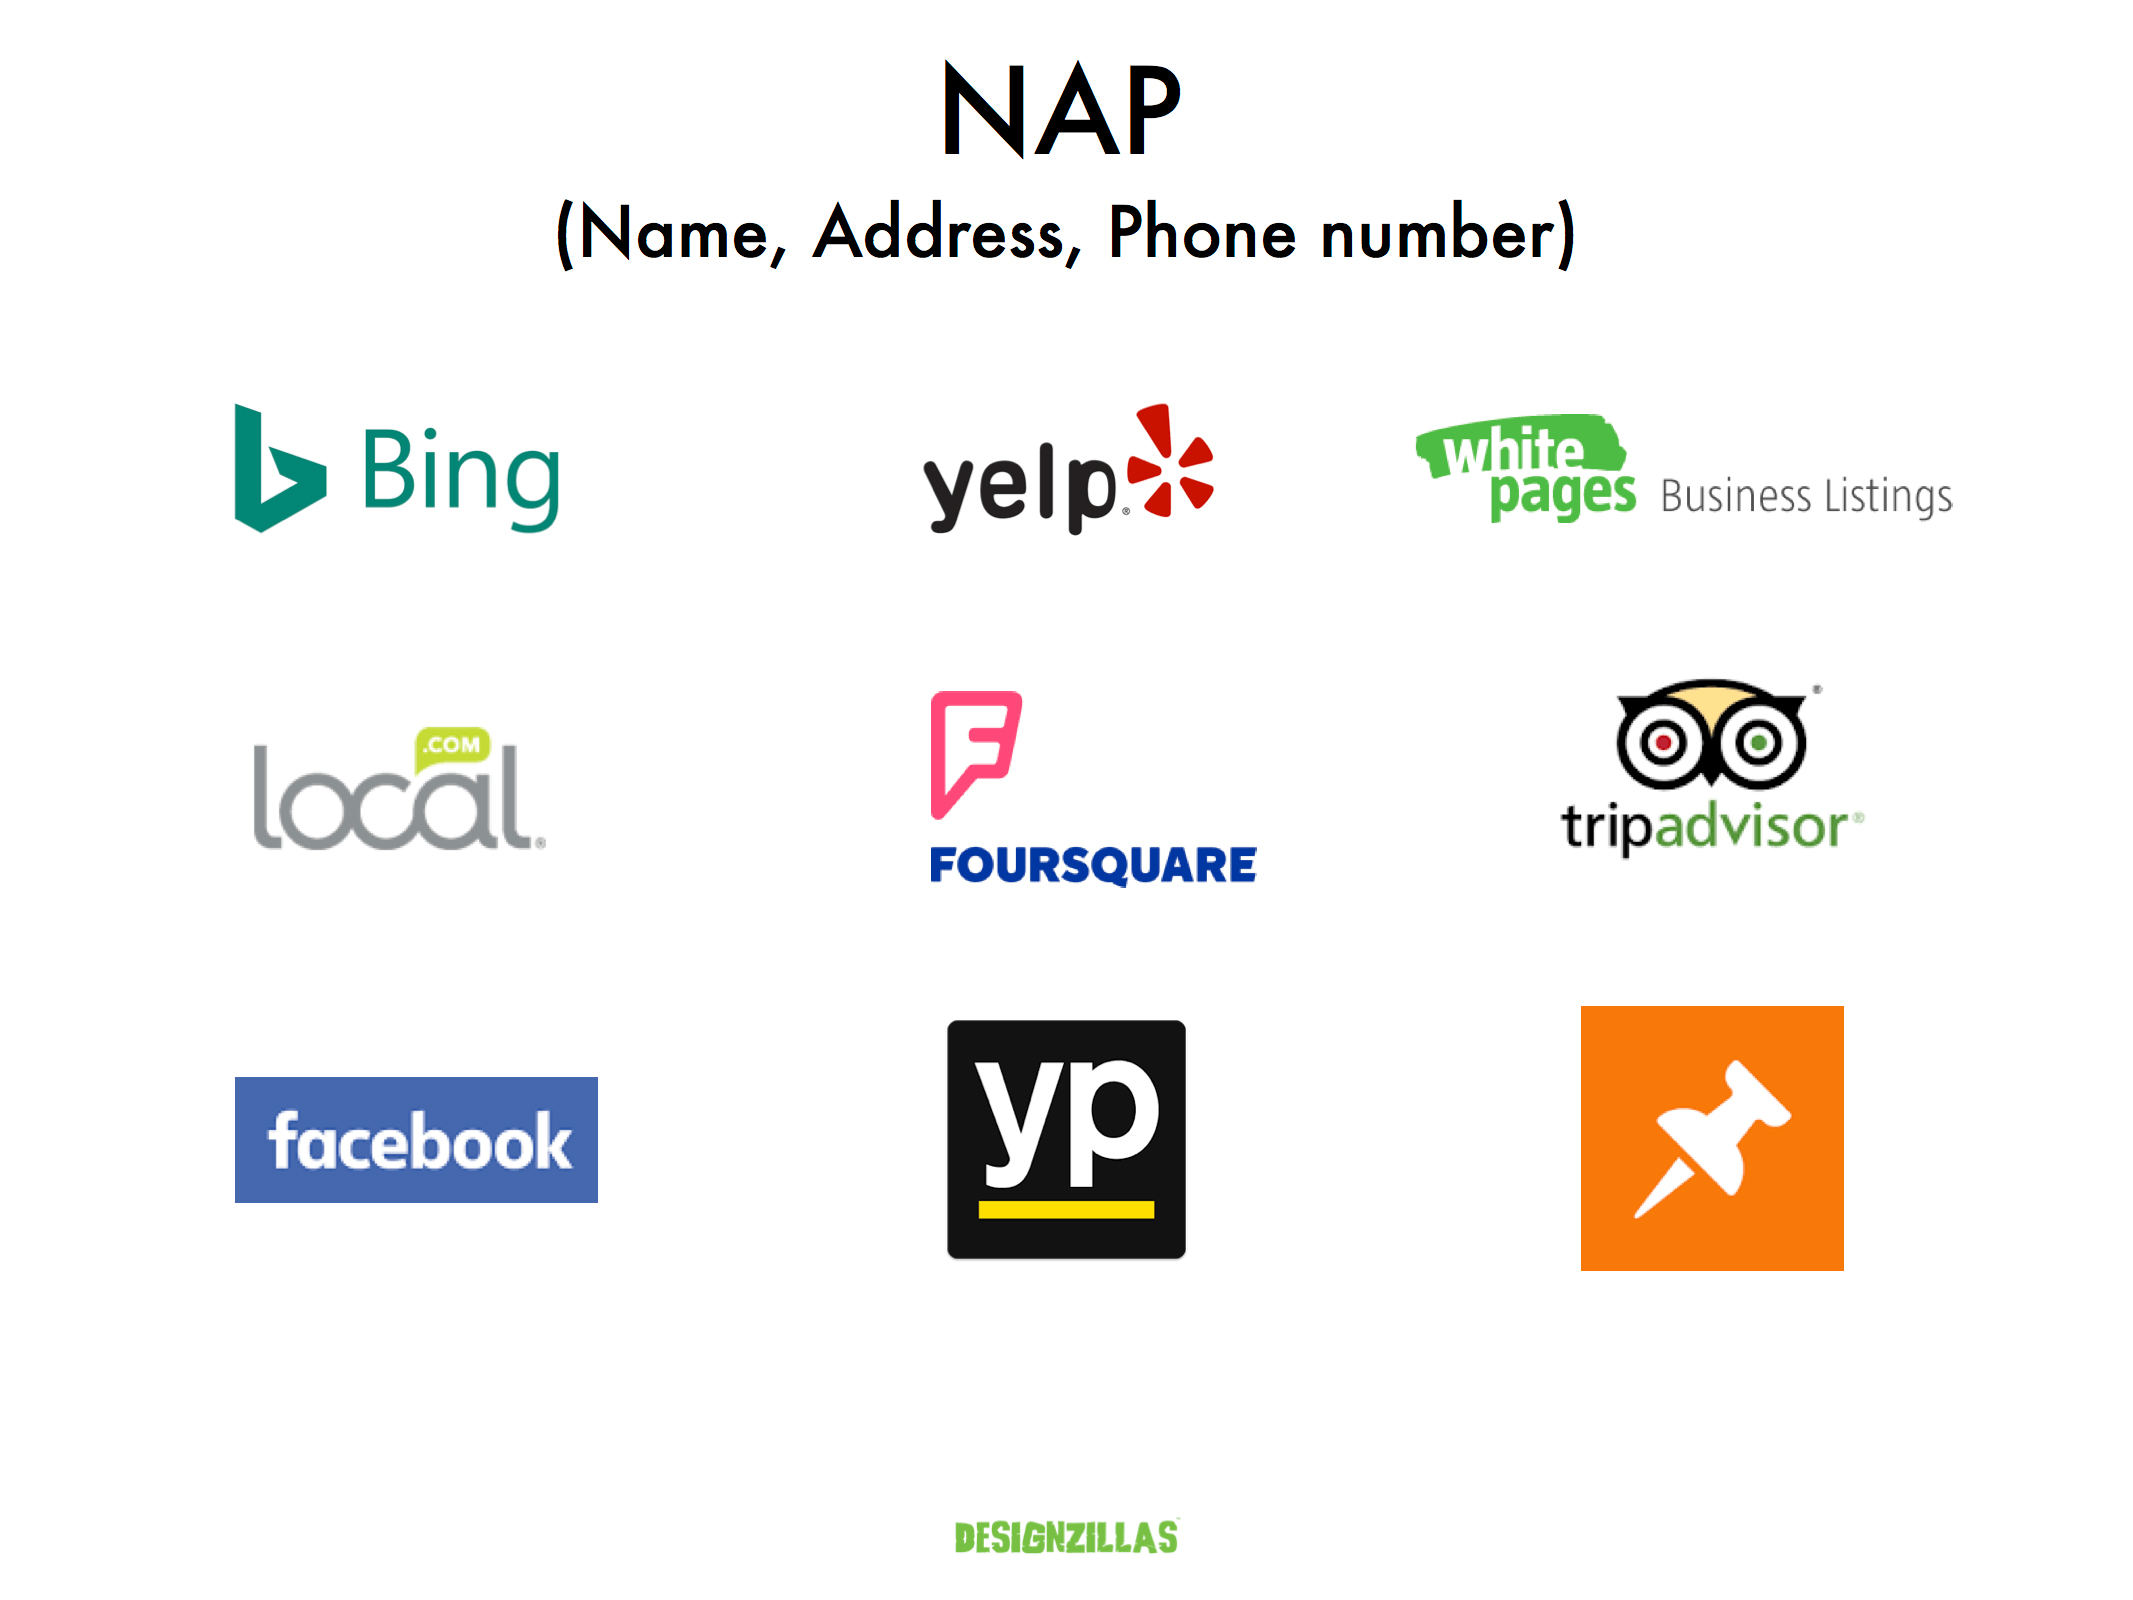 NAP: Name, Address, Phone Number